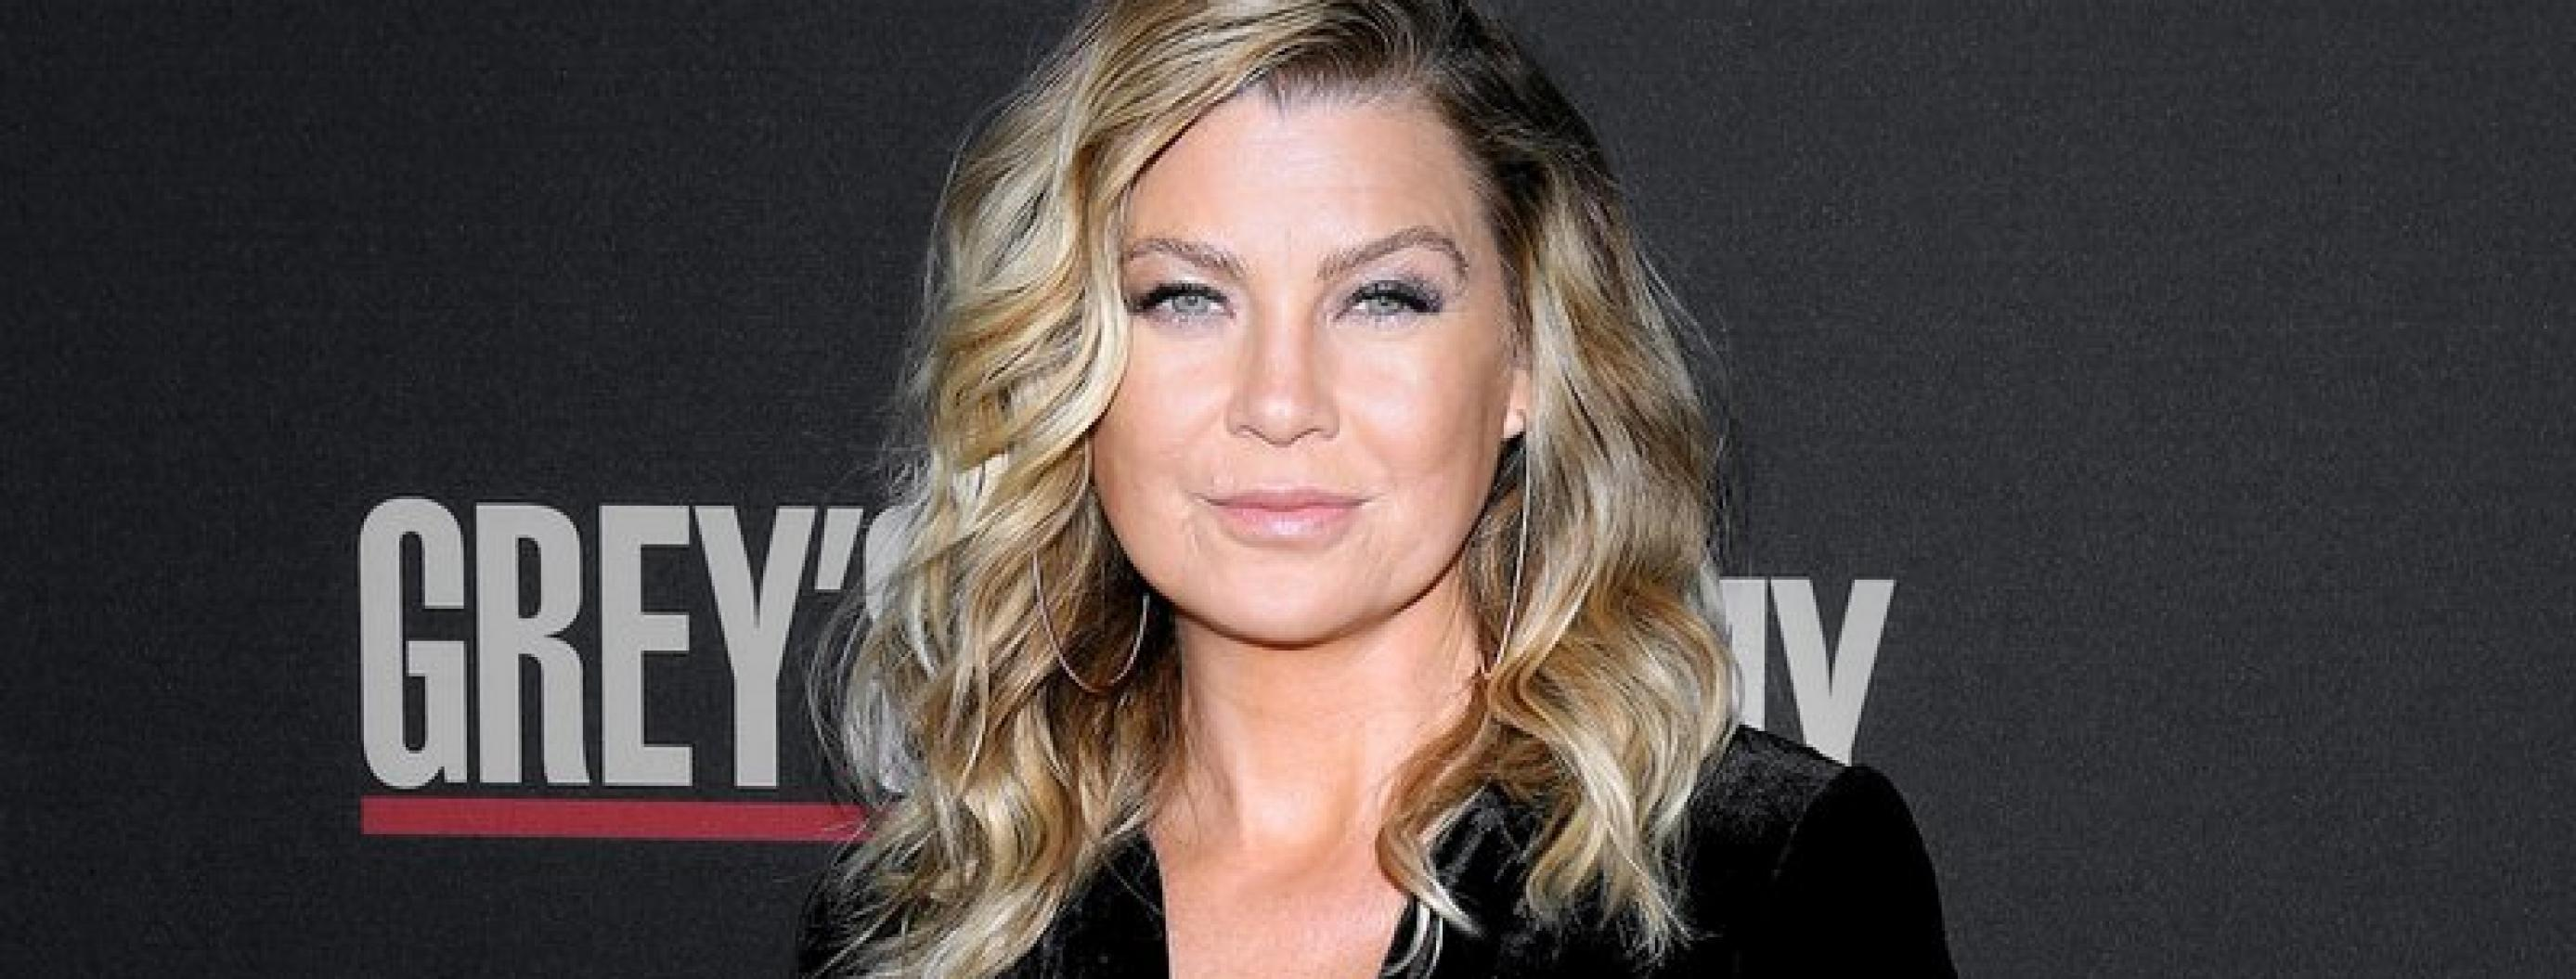 'Grey's Anatomy' Star Ellen Pompeo Reveals How She Got the $20 Million Contract